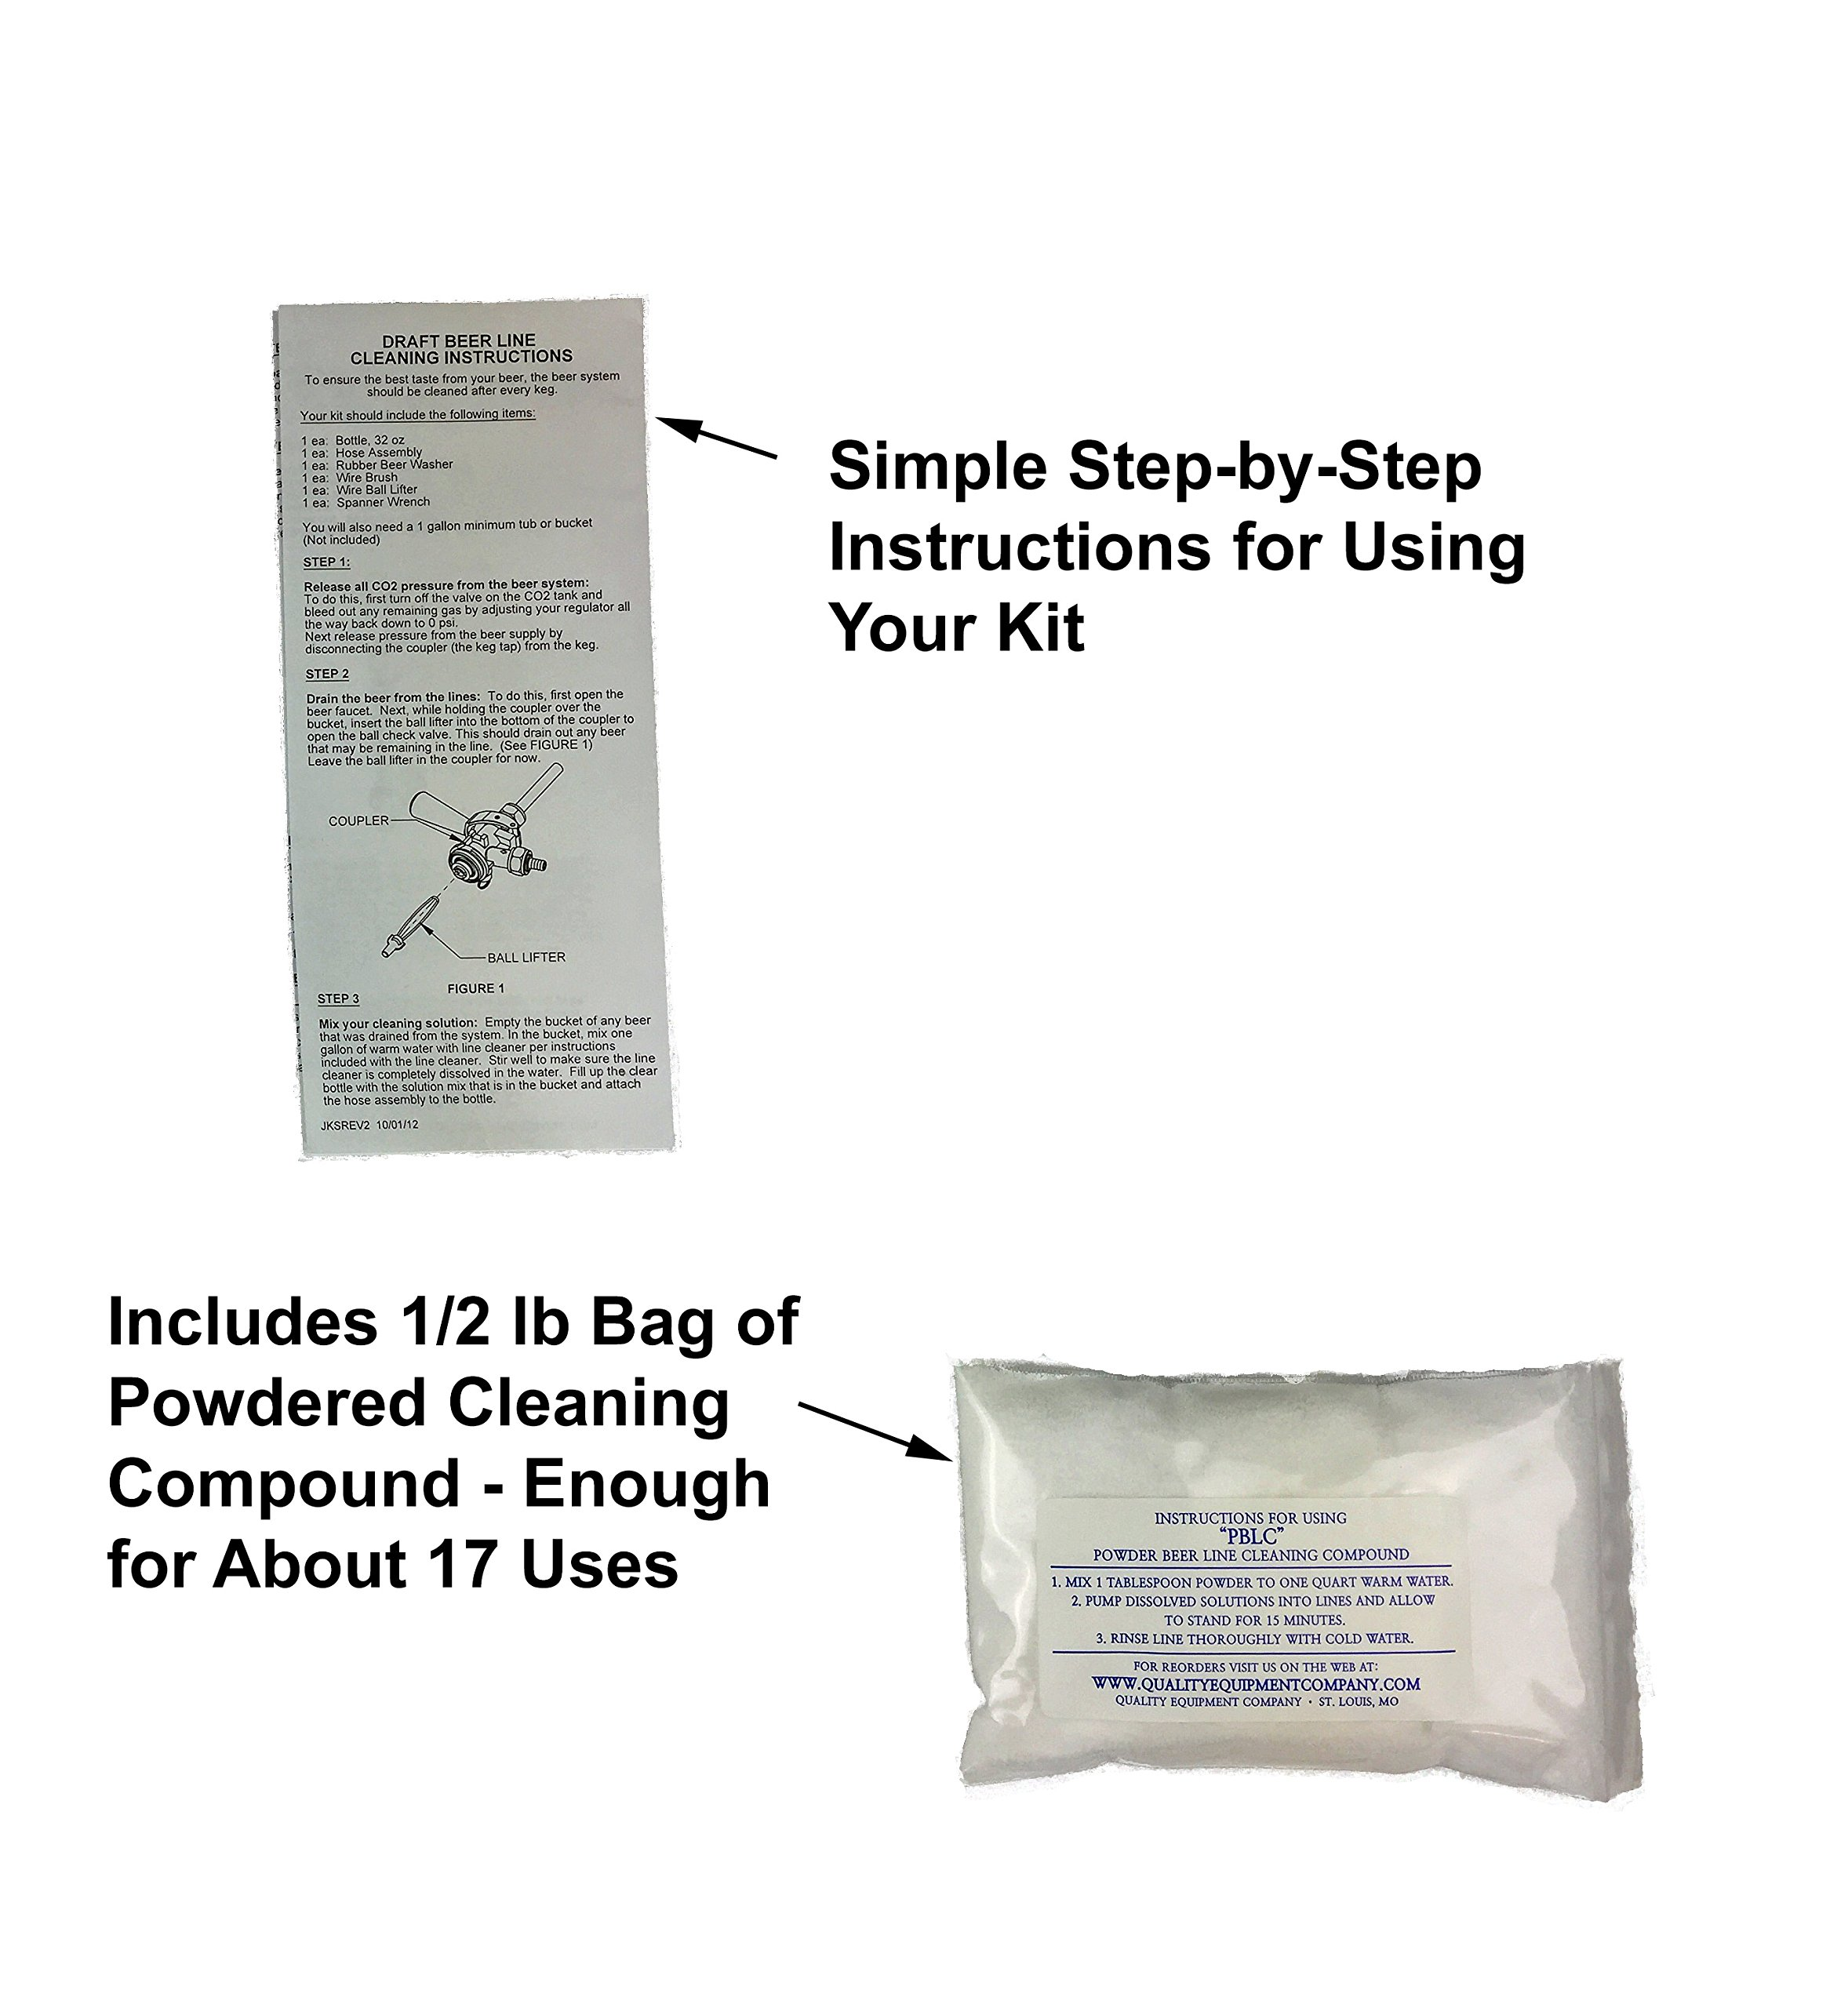 Kegerator Beer Line Cleaning Kit - All Necessary Cleaning Accessories and Powder Cleaning Compound by Right Dynamics (Image #4)